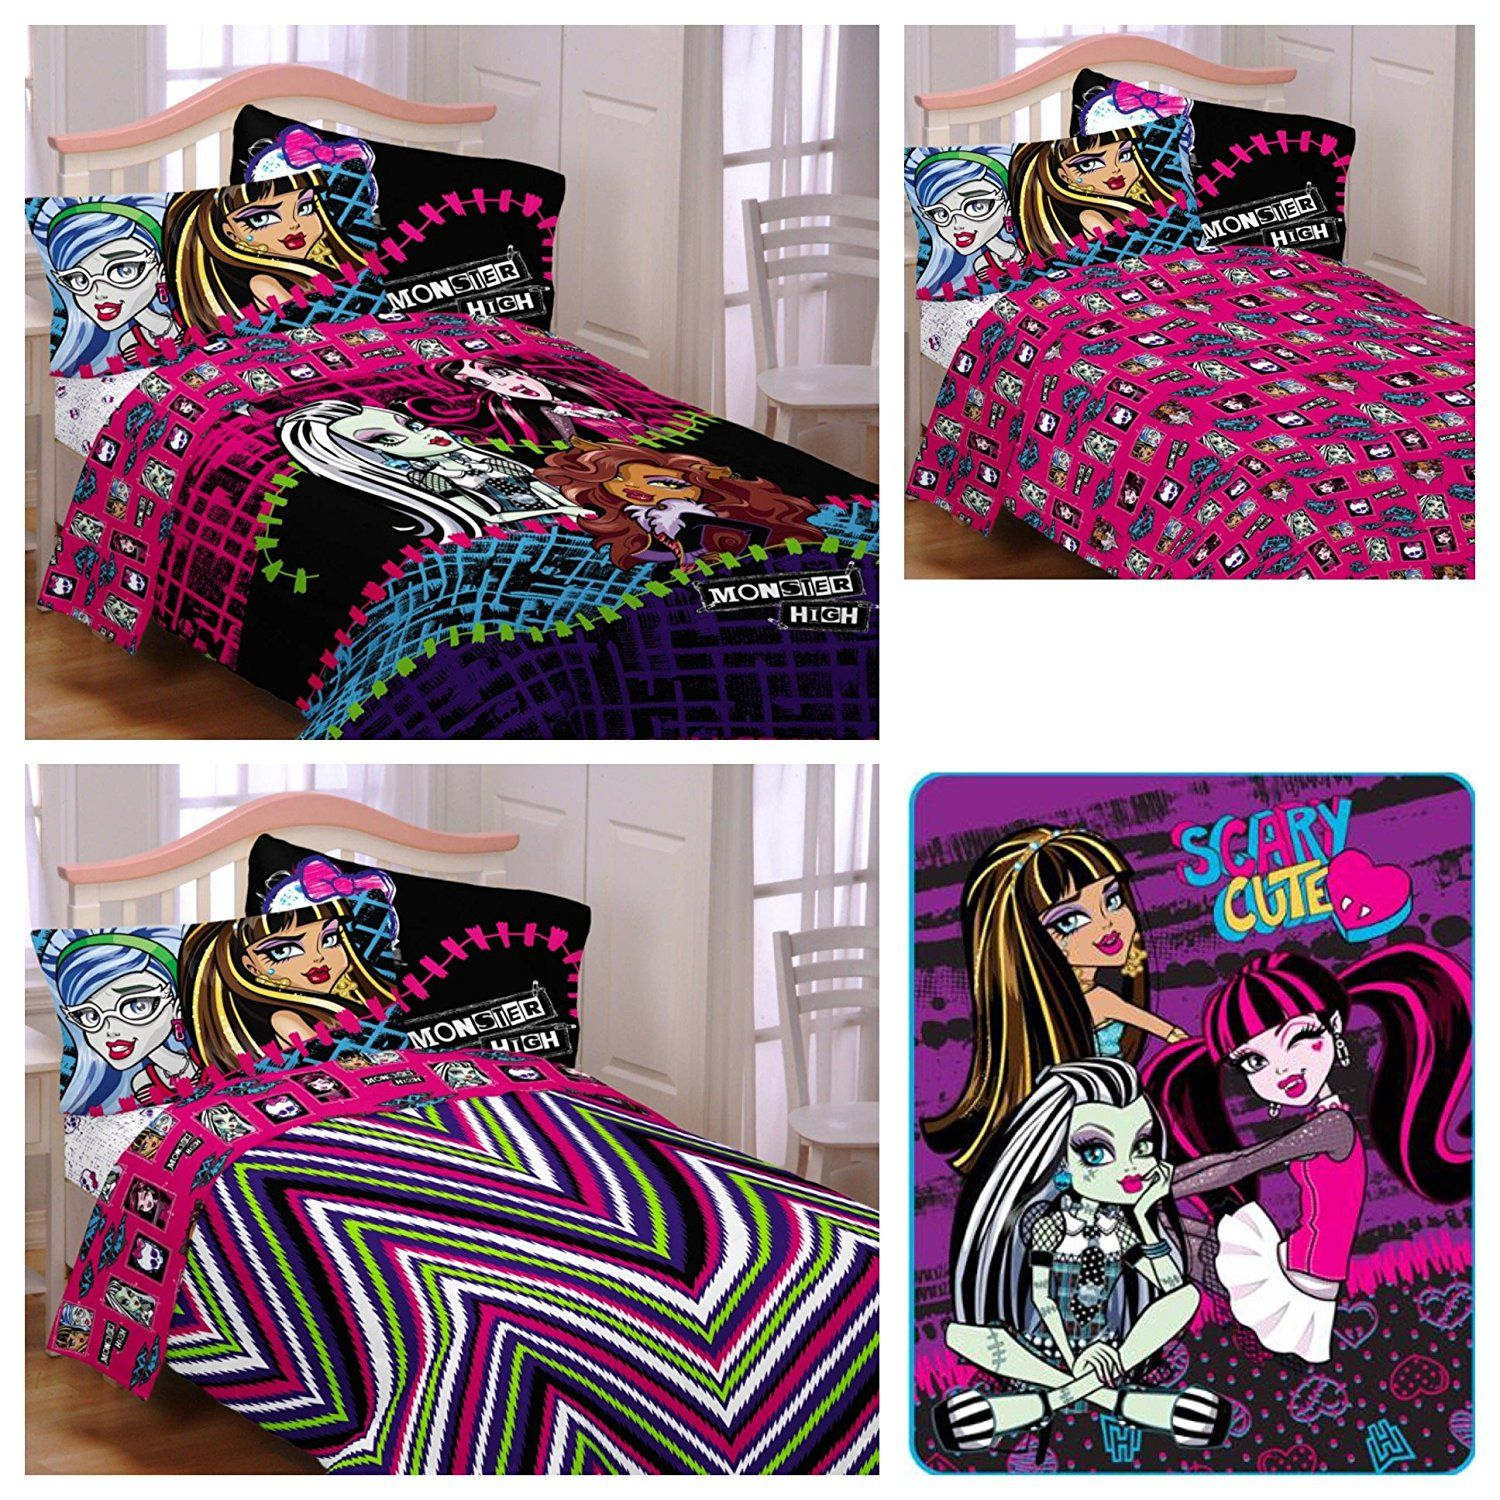 Mattel Monster High Reversible Comforter Sheets Pillow Case Plush Blanket 5 Piece Bed